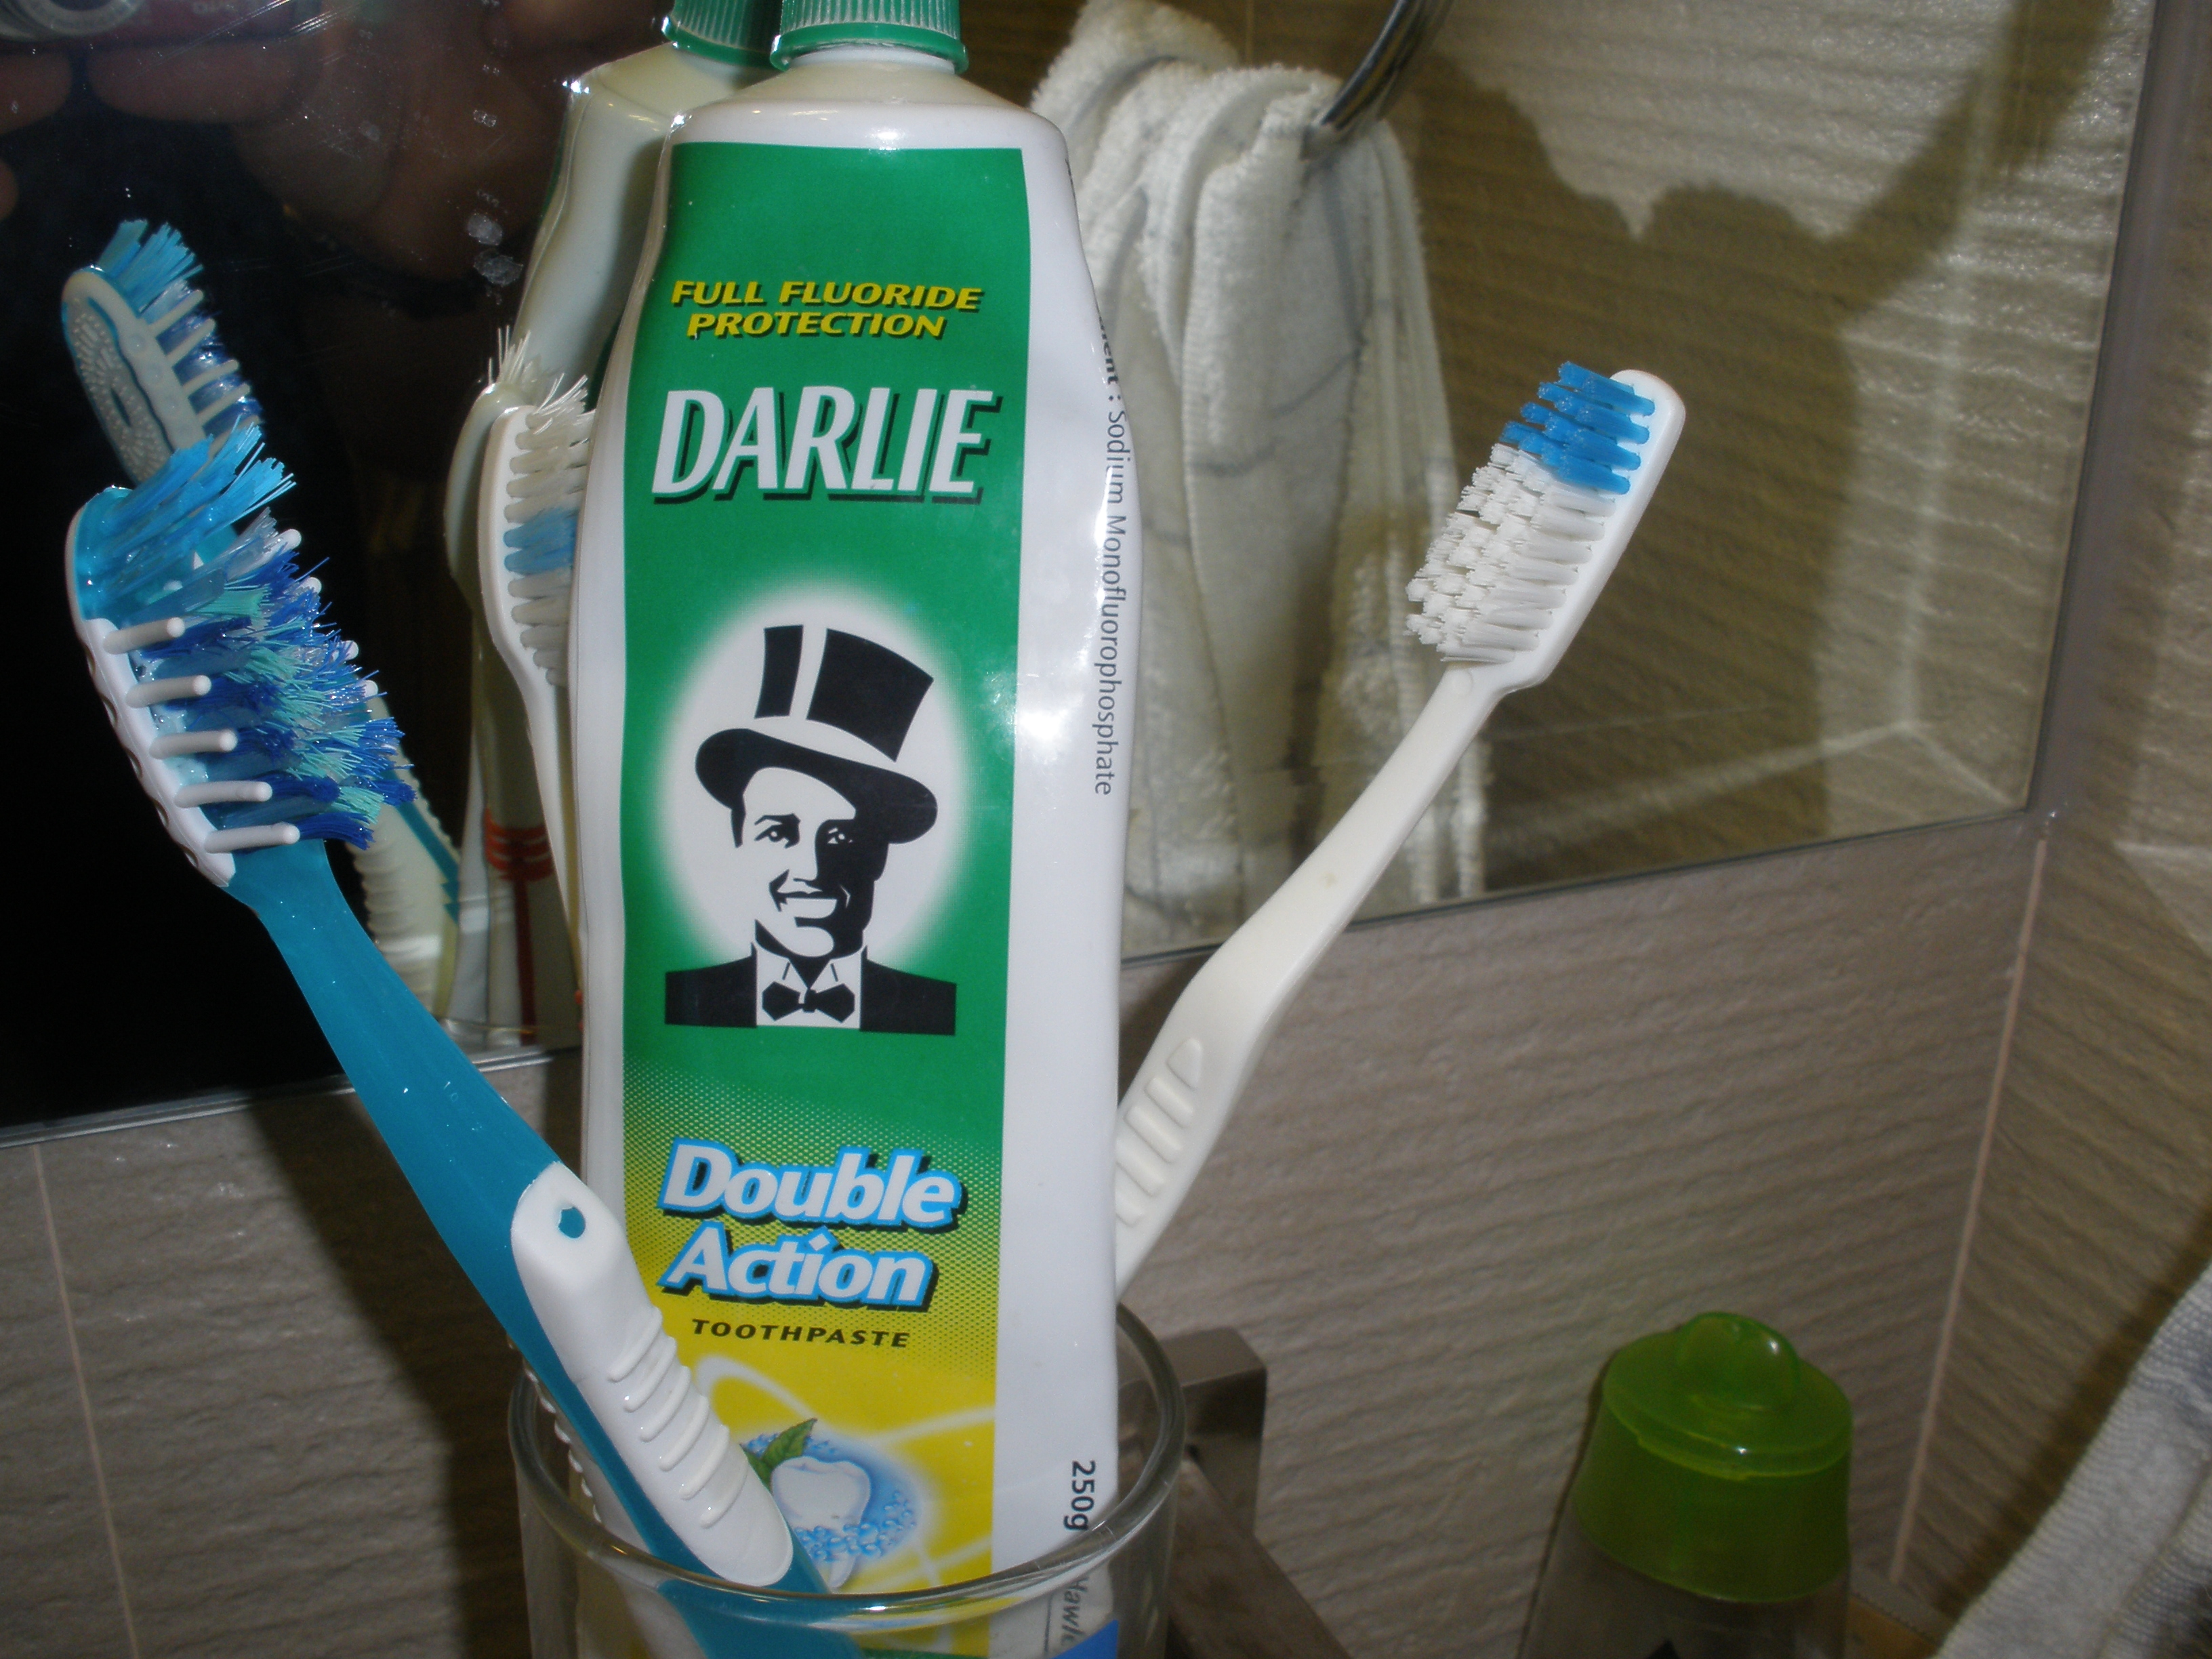 segmentation for toothpaste darlie Nuttapong petchsangrojn  siam regal (darlie toothpaste)  by segmentation and control all visual to be in line with brand guideline.